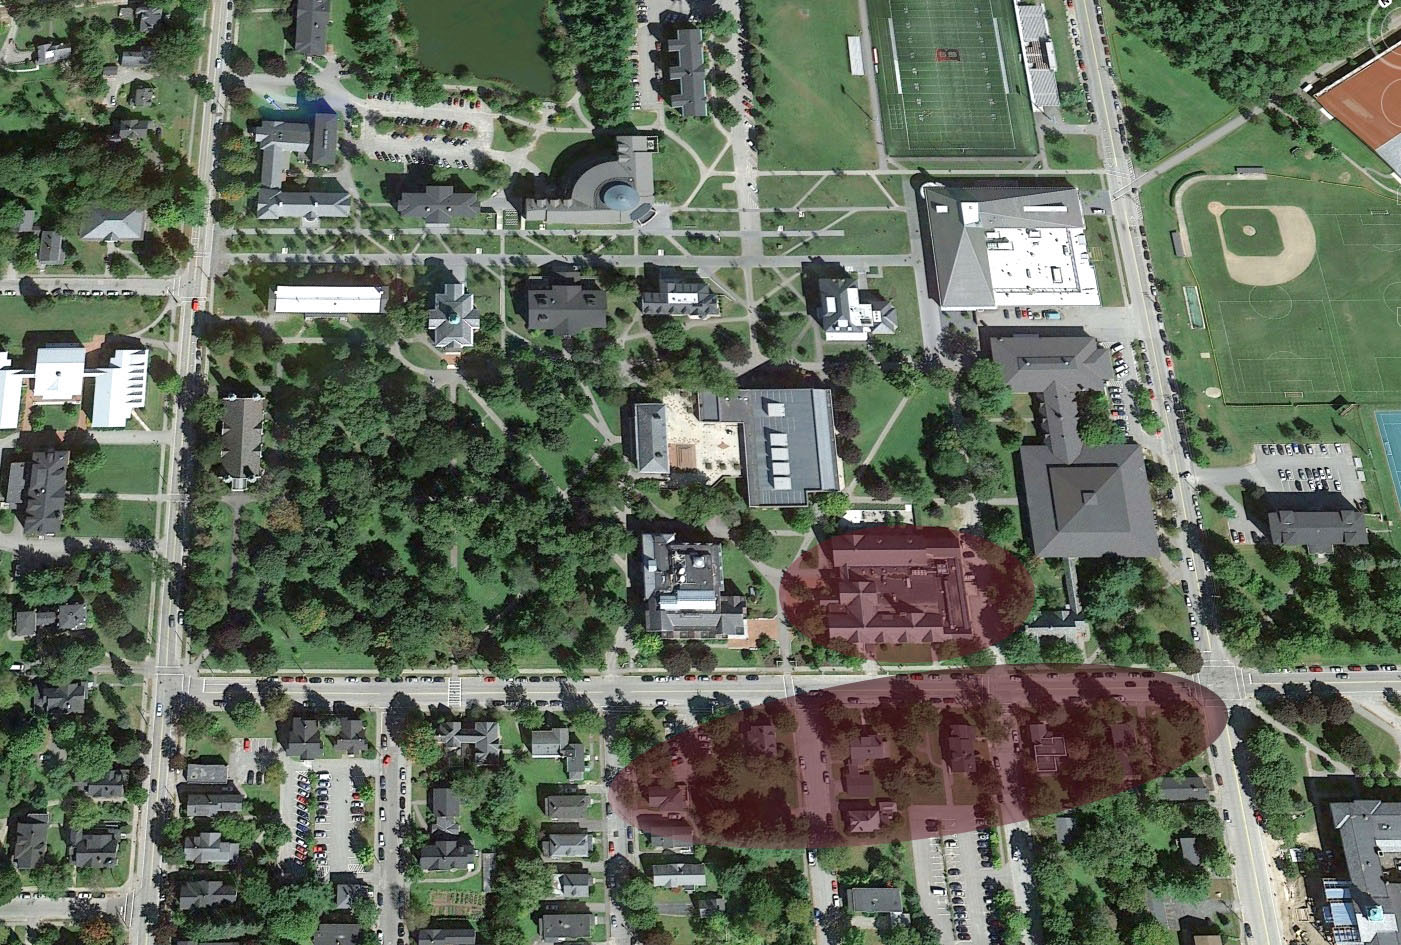 bates college campus map New Residence Halls On Campus Avenue Begin The Campus Life Project bates college campus map